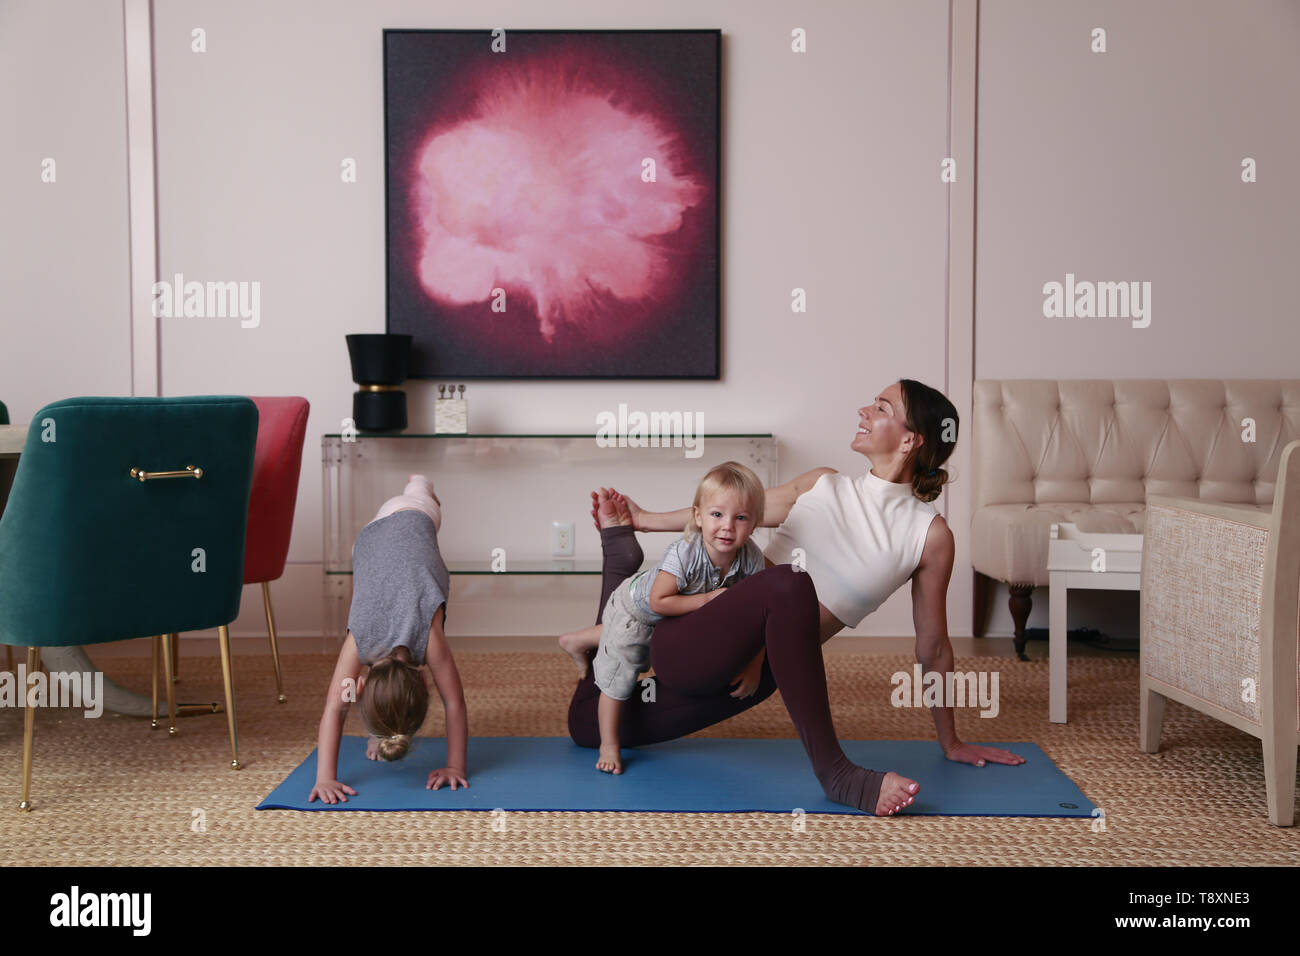 San Diego, CALIFORNIA, USA. 9th Nov, 2018. November 9, 2018 - San Diego, California, USA - A woman does yoga in a home with her two small children. Credit: KC Alfred/ZUMA Wire/Alamy Live News - Stock Image